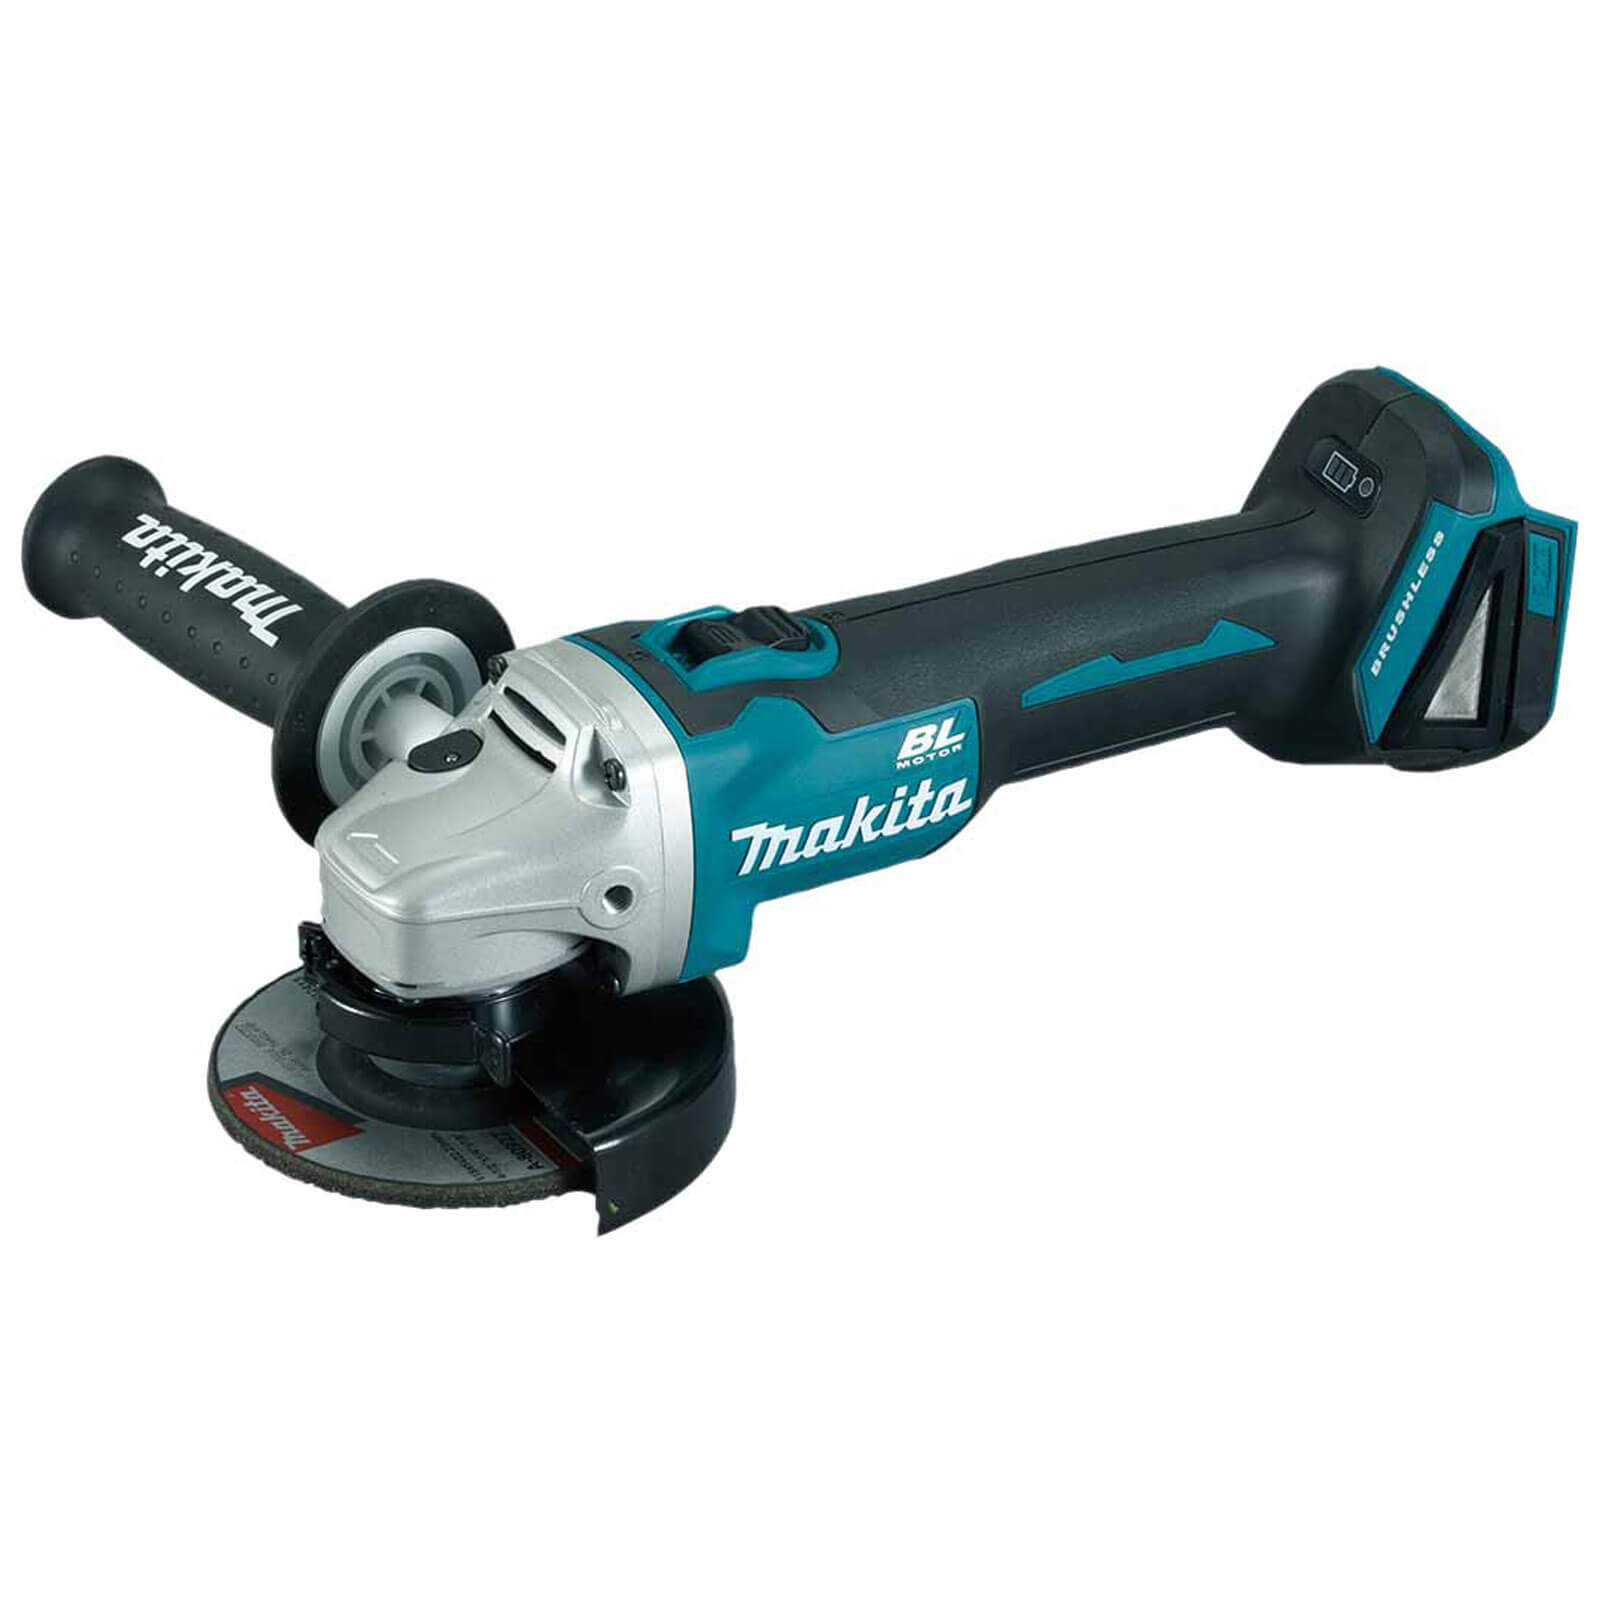 """Makita DGA454Z 18v Cordless Angle Grinder 115mm / 4.5"""" Disc without Battery or Charger"""